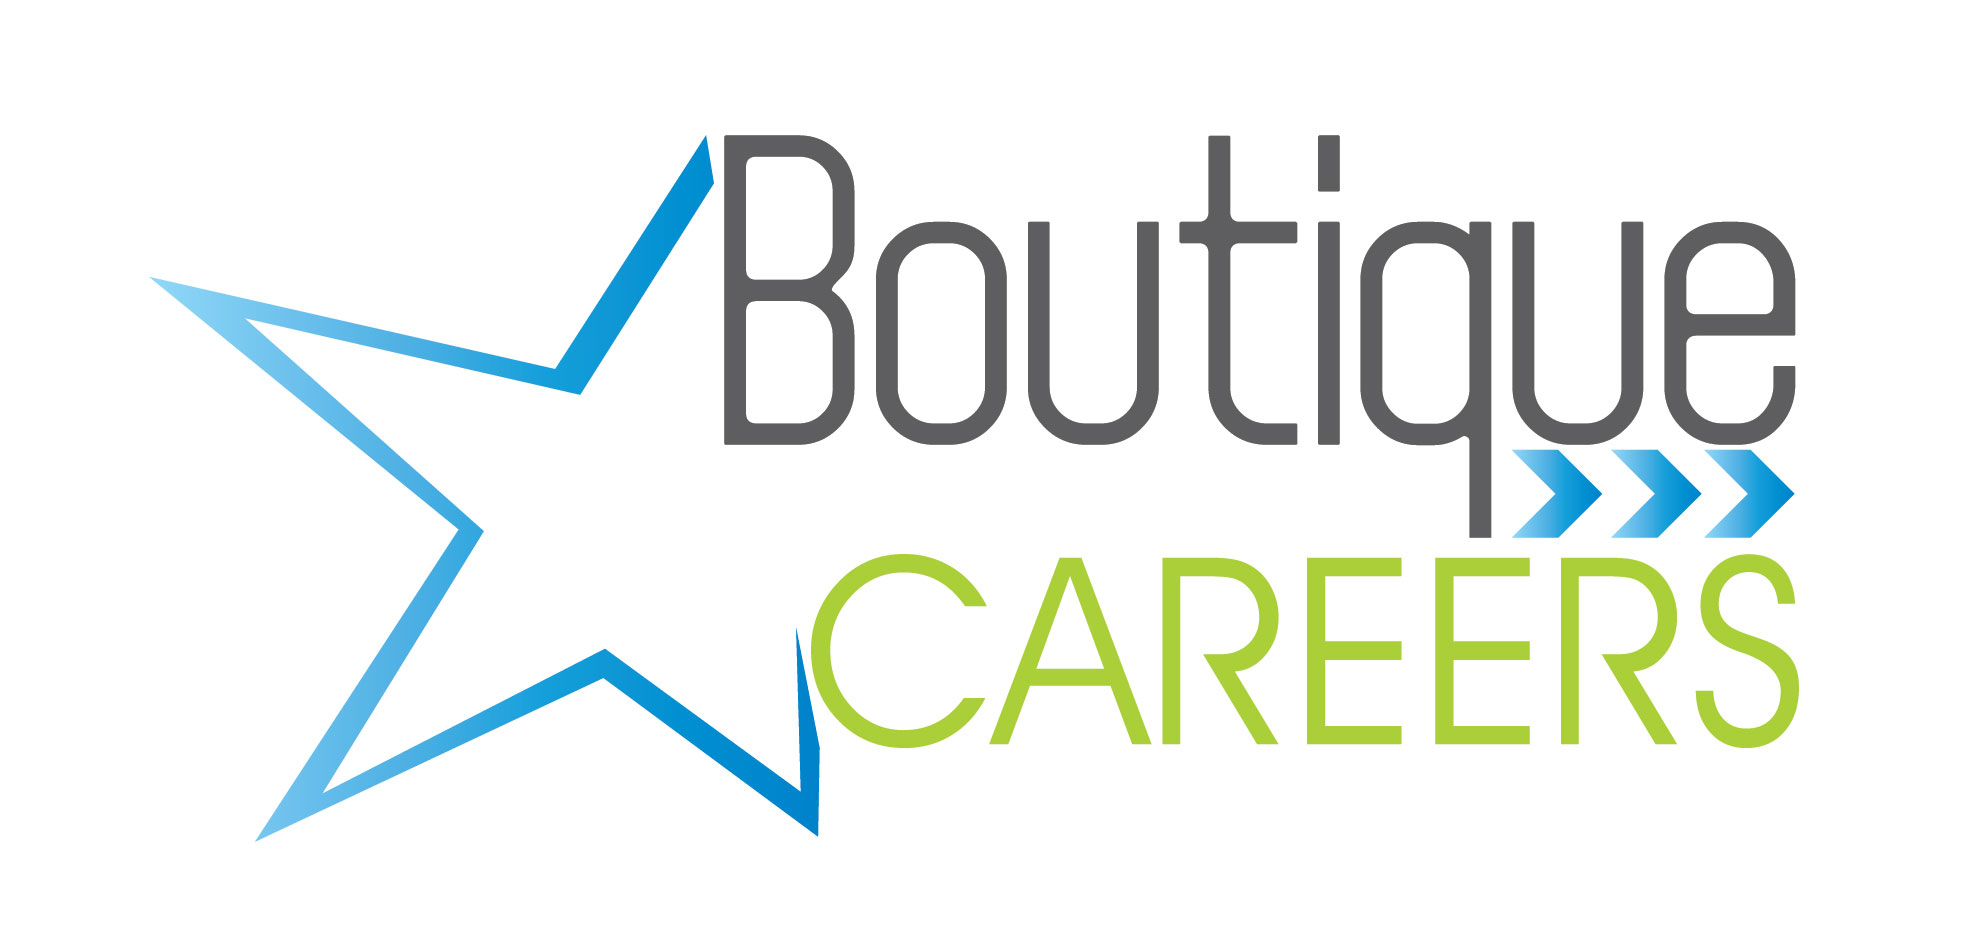 Logo Design by latidesign - Entry No. 18 in the Logo Design Contest Captivating Logo Design for Boutique Careers.